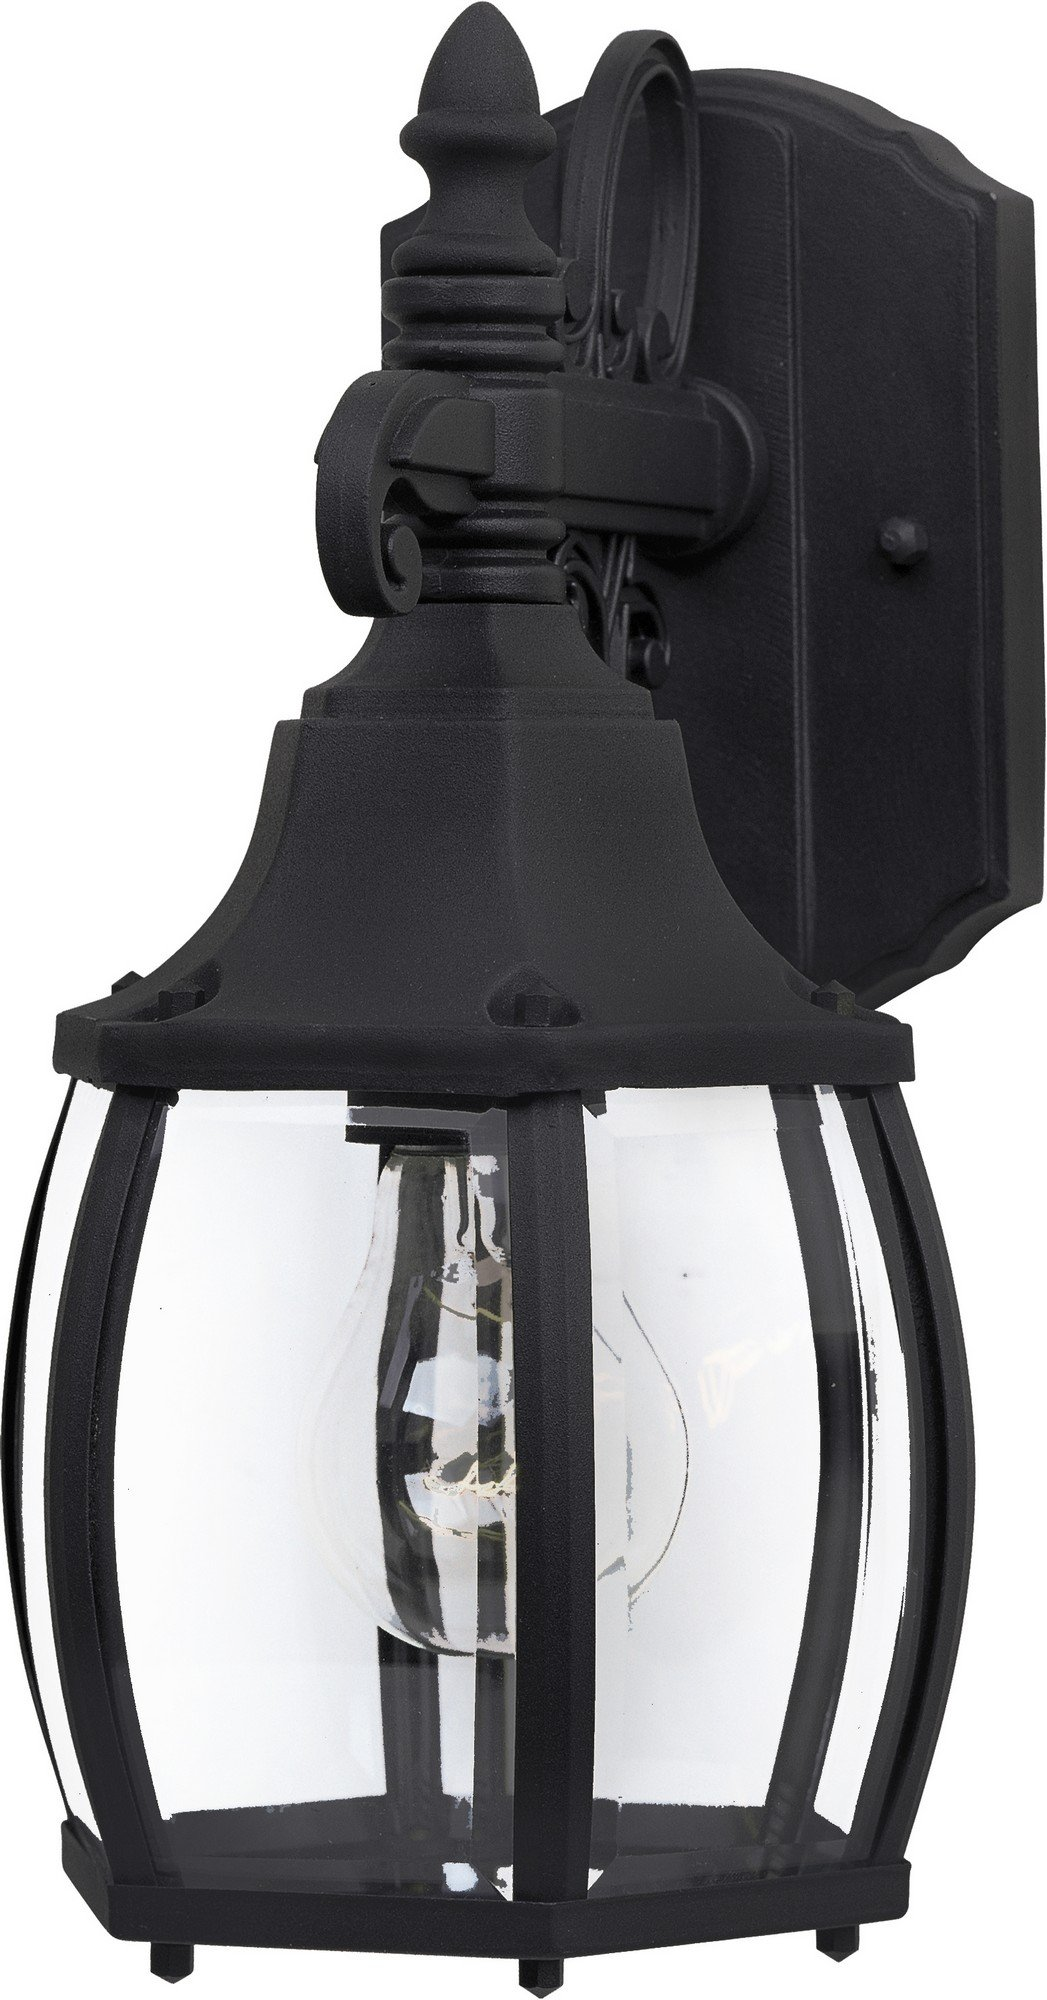 Maxim 1031BK Crown Hill 1-Light Outdoor Wall Lantern, Black Finish, Clear Glass, MB Incandescent Incandescent Bulb , 40W Max., Dry Safety Rating, Standard Dimmable, GLASS Shade Material, 3600 Rated Lumens